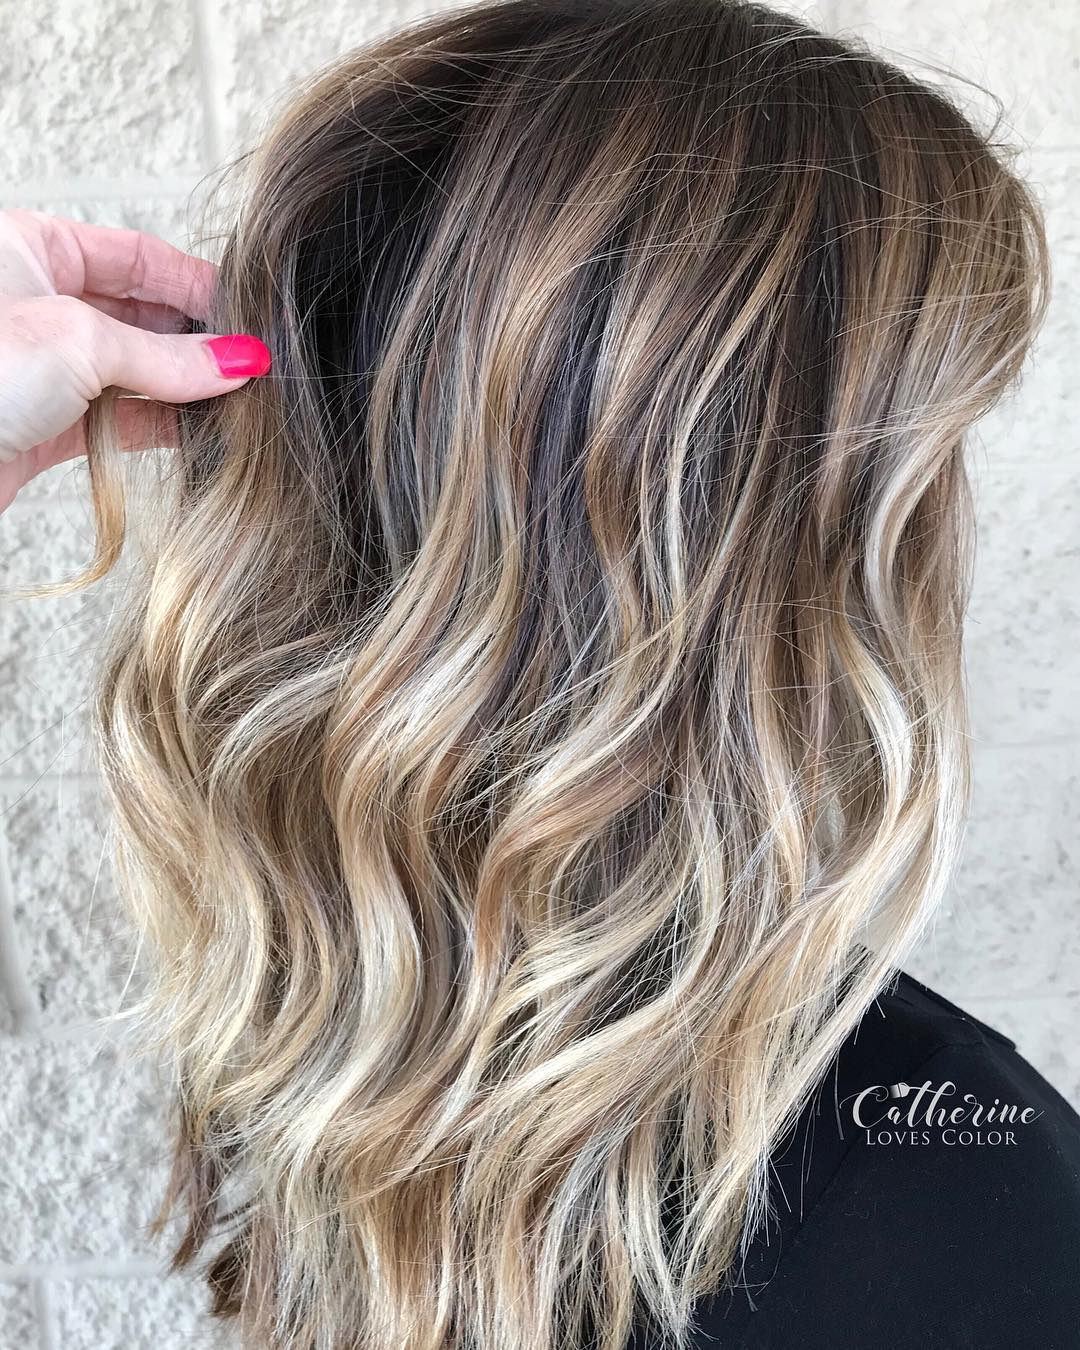 Medium Layered Bronde Balayage Hair